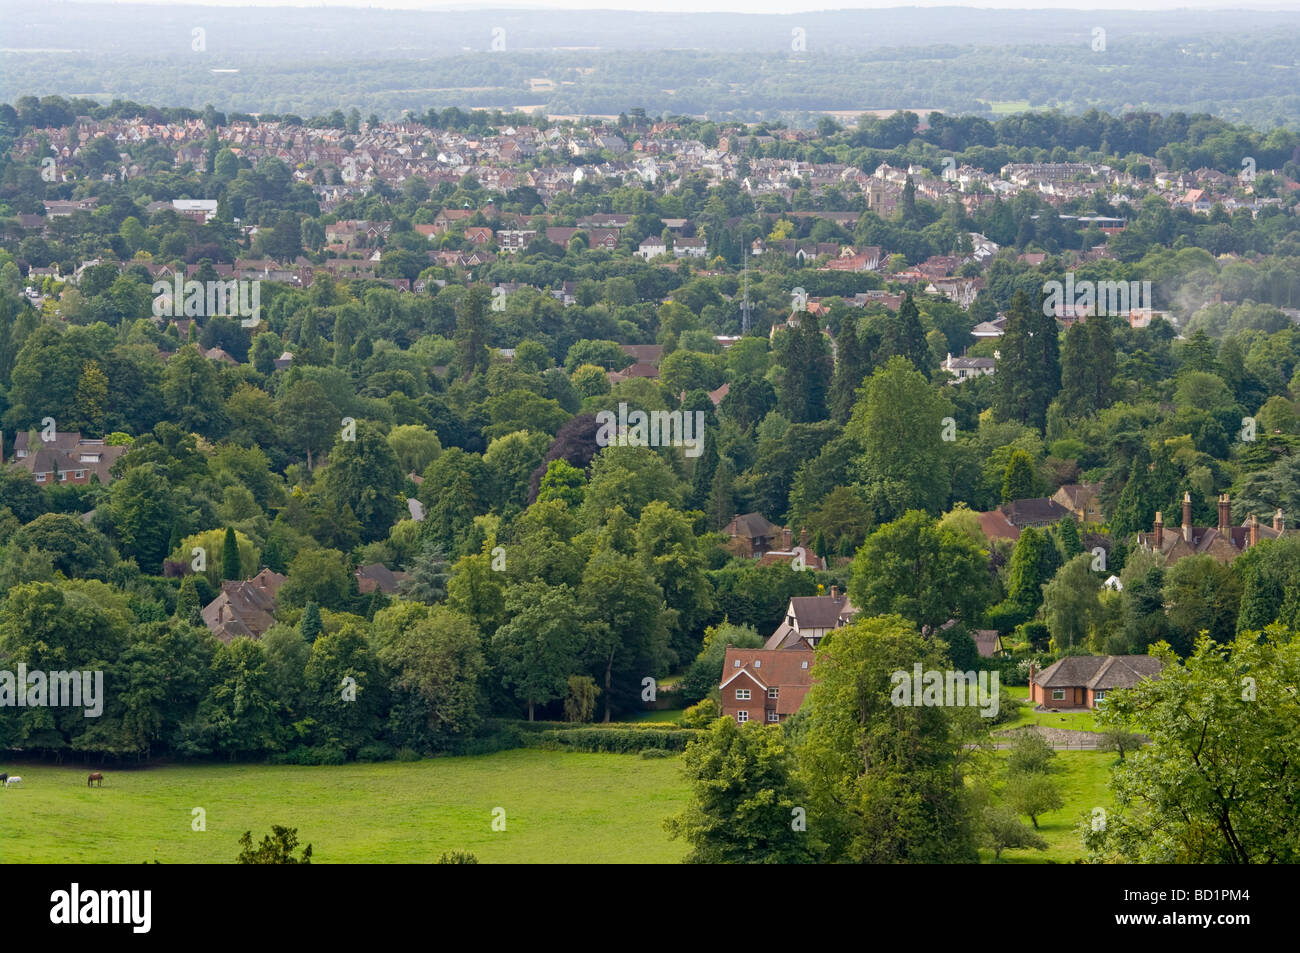 The Town Of Reigate Surrey England As Seen from Reigate Hill - Stock Image